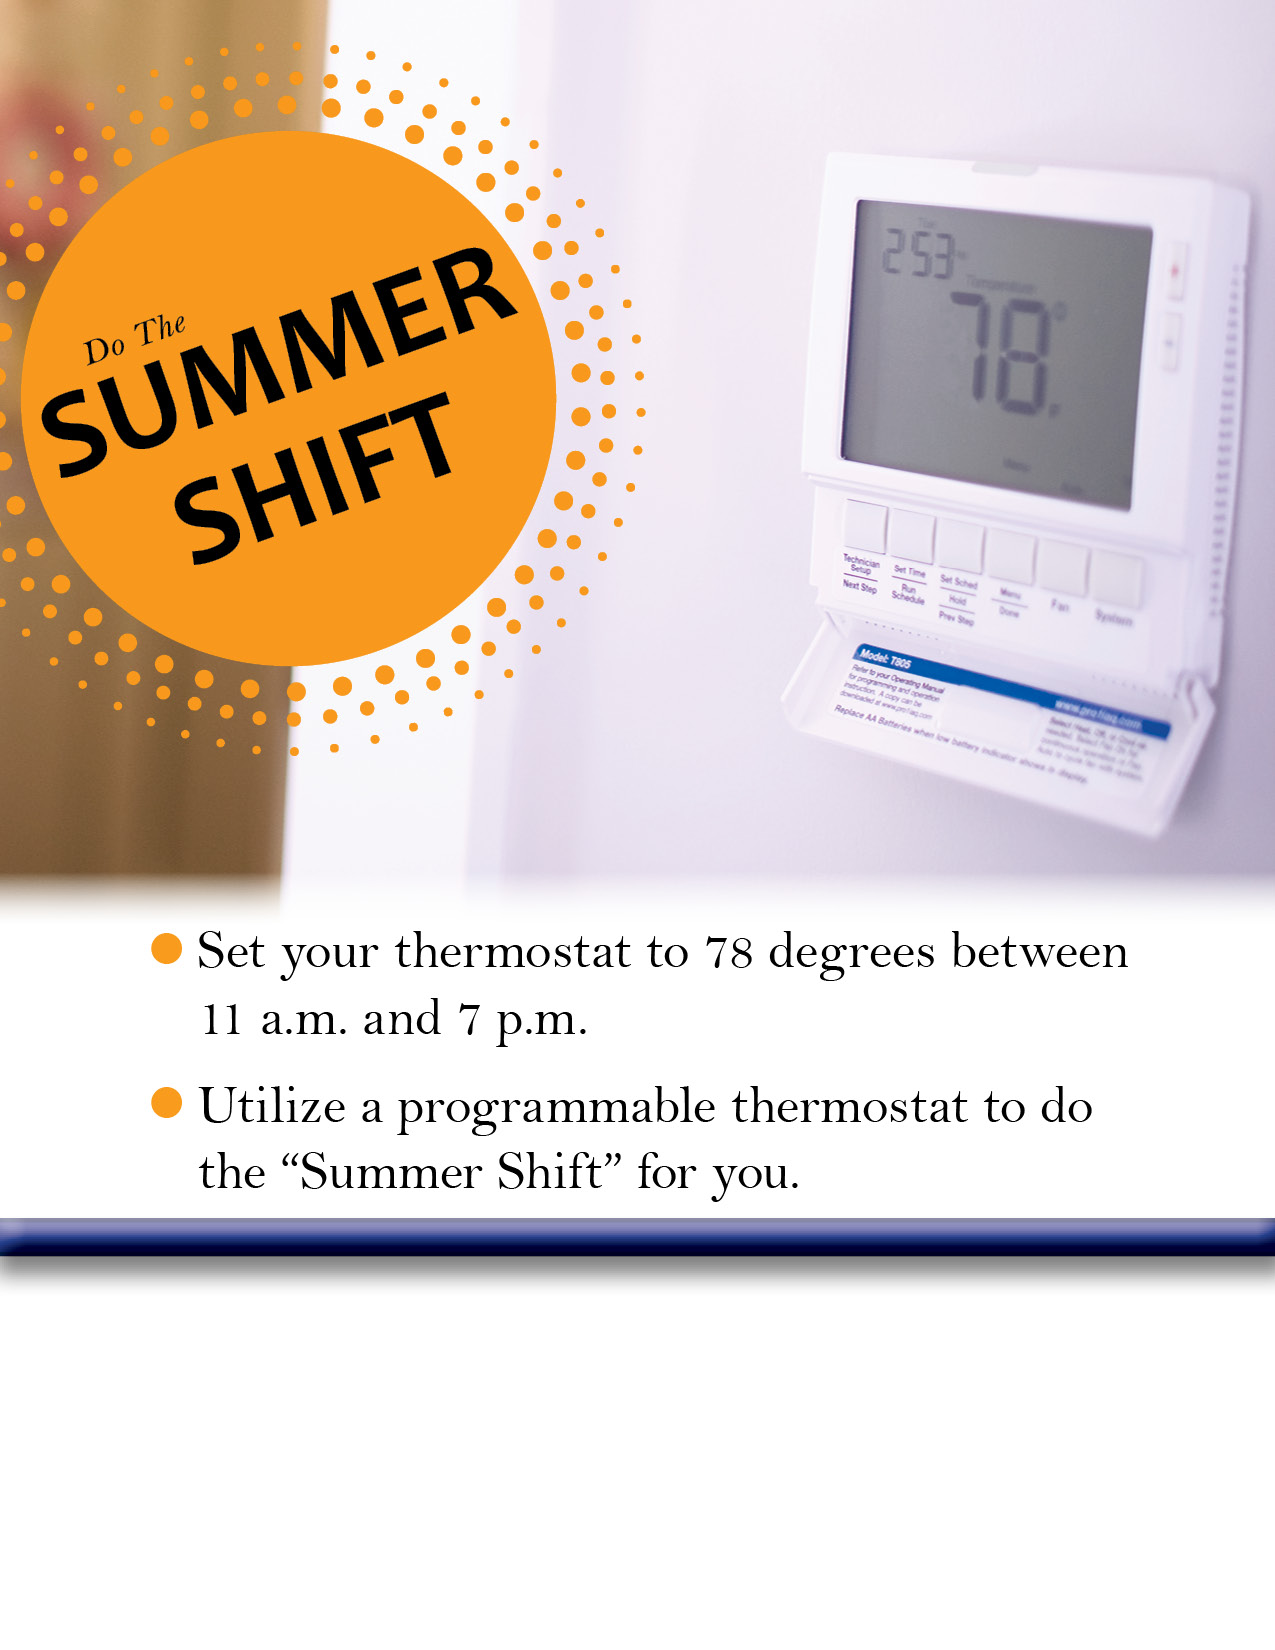 Do the Summer Shift, Raise Thermostat 4 Degrees in Summer